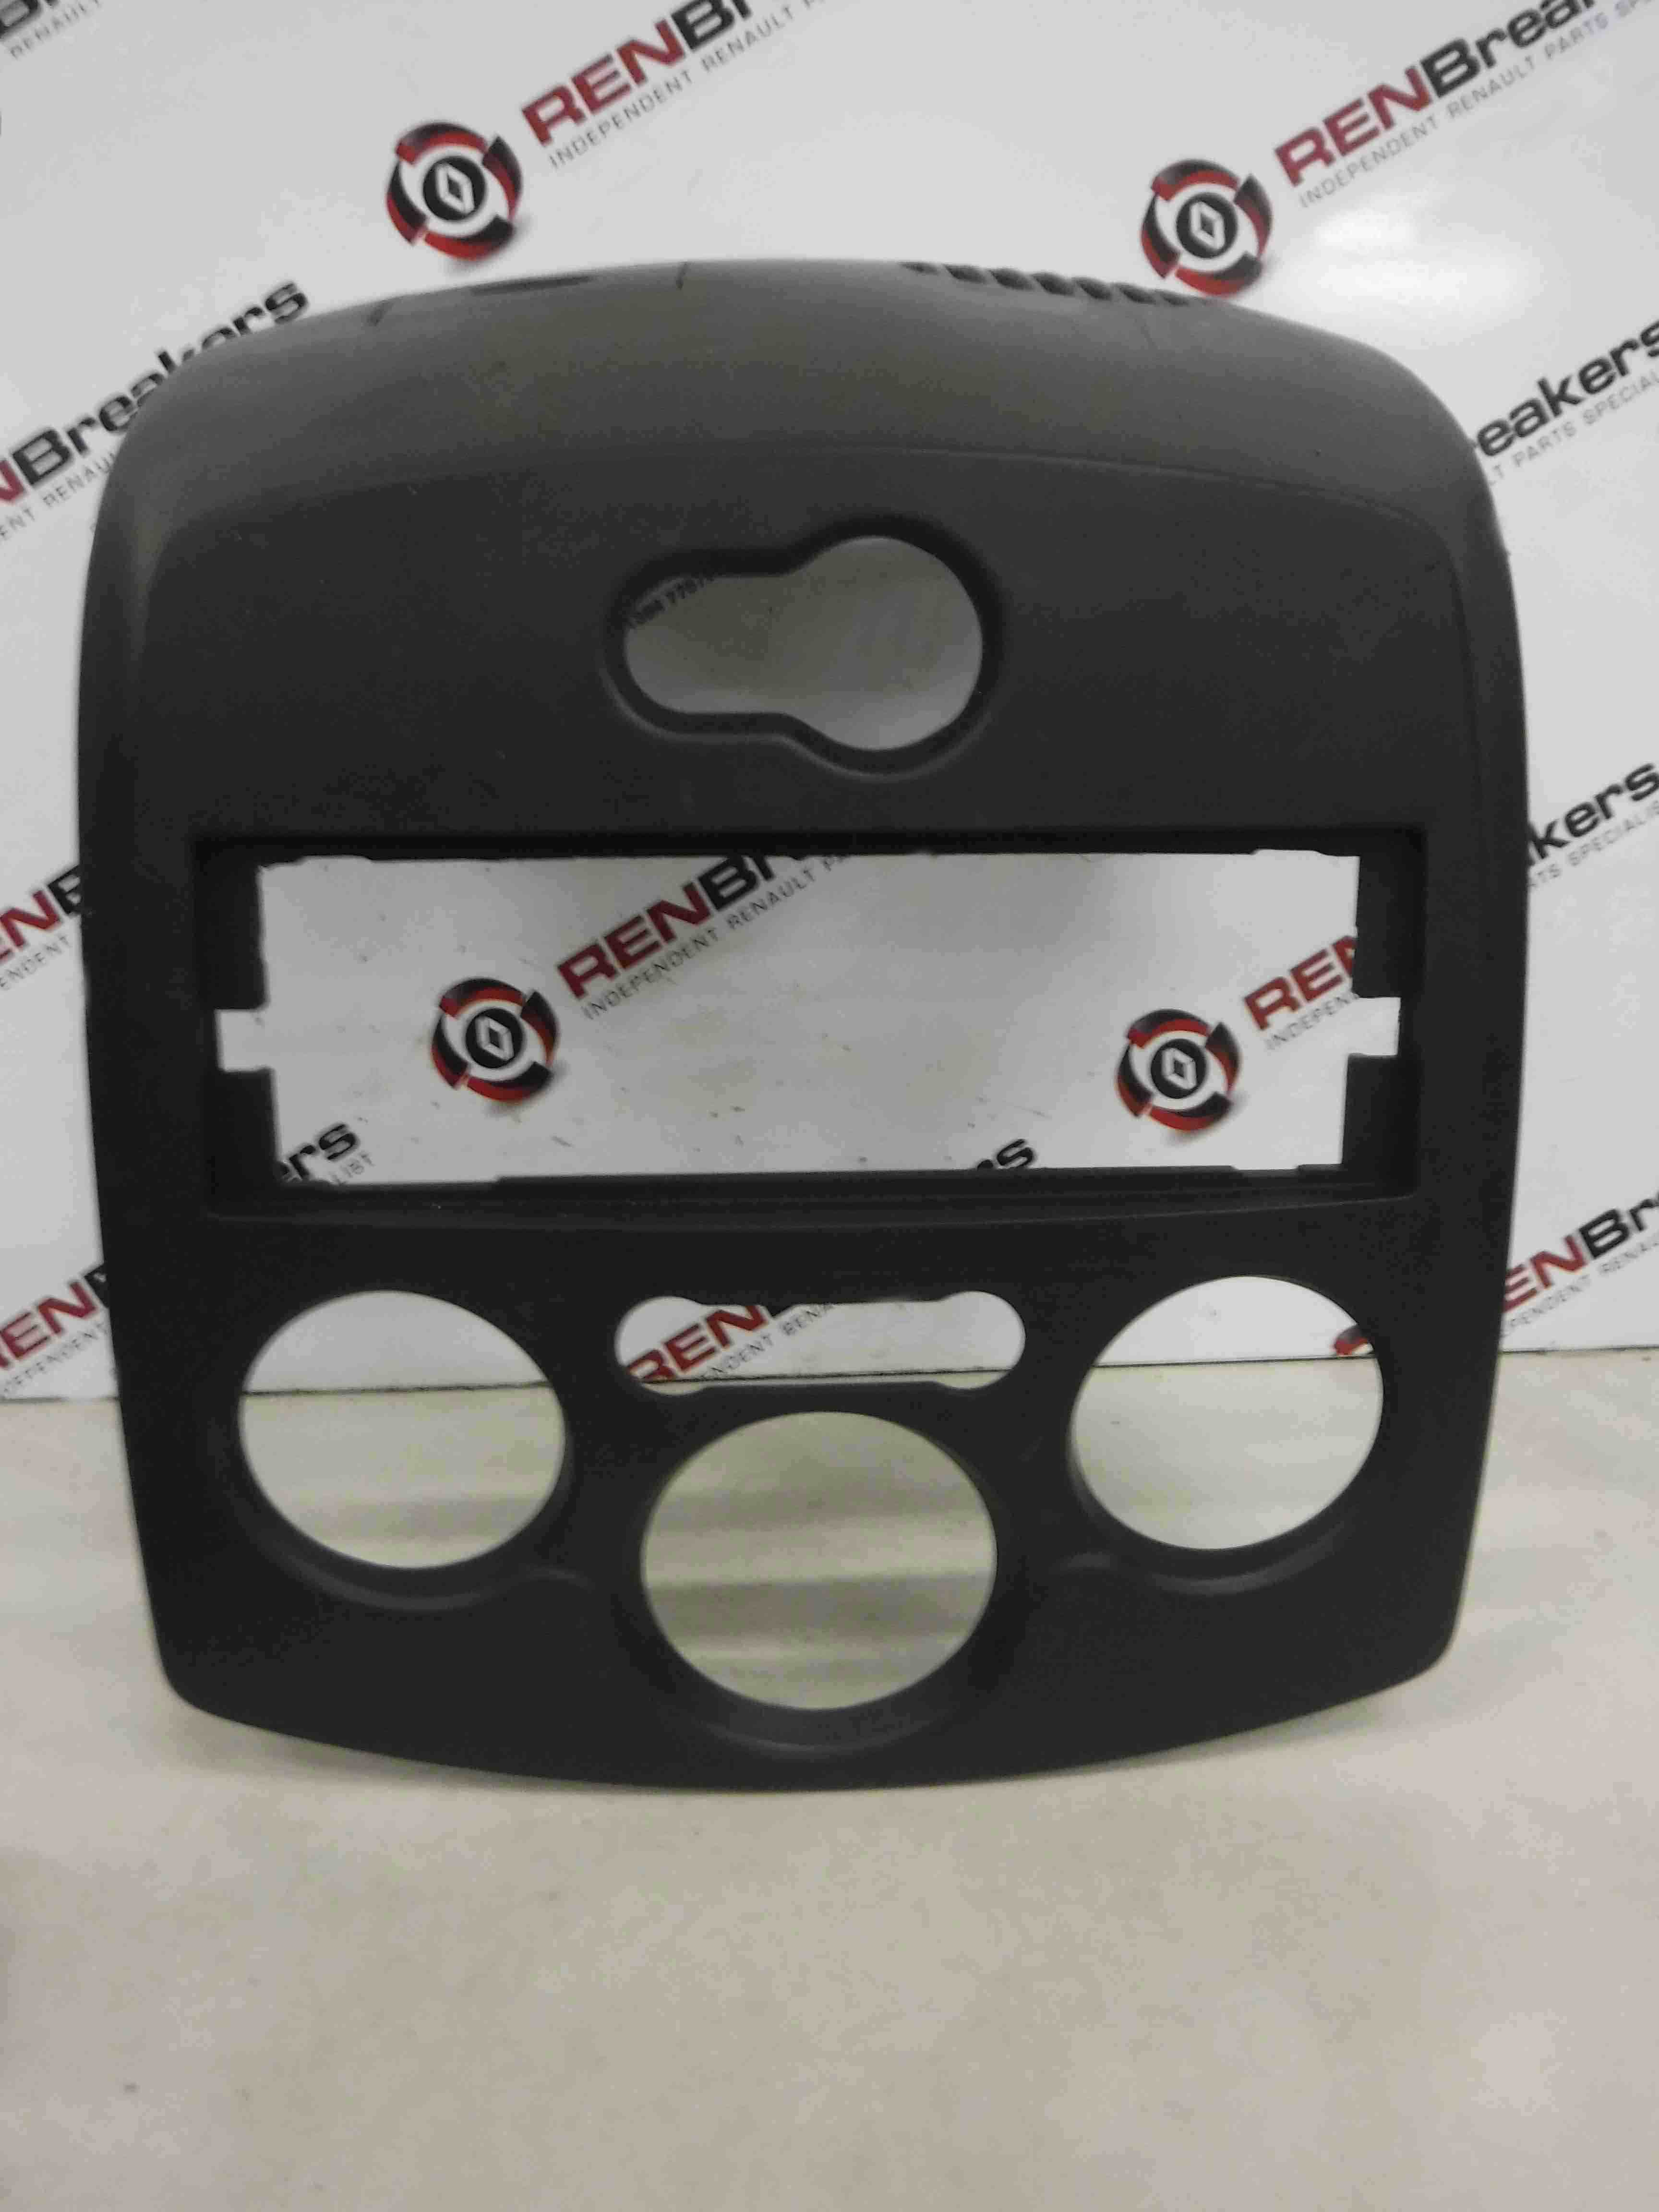 Renault Clio MK3 2005-2012 Heater Controls Cd Surround Plastic Black Plain